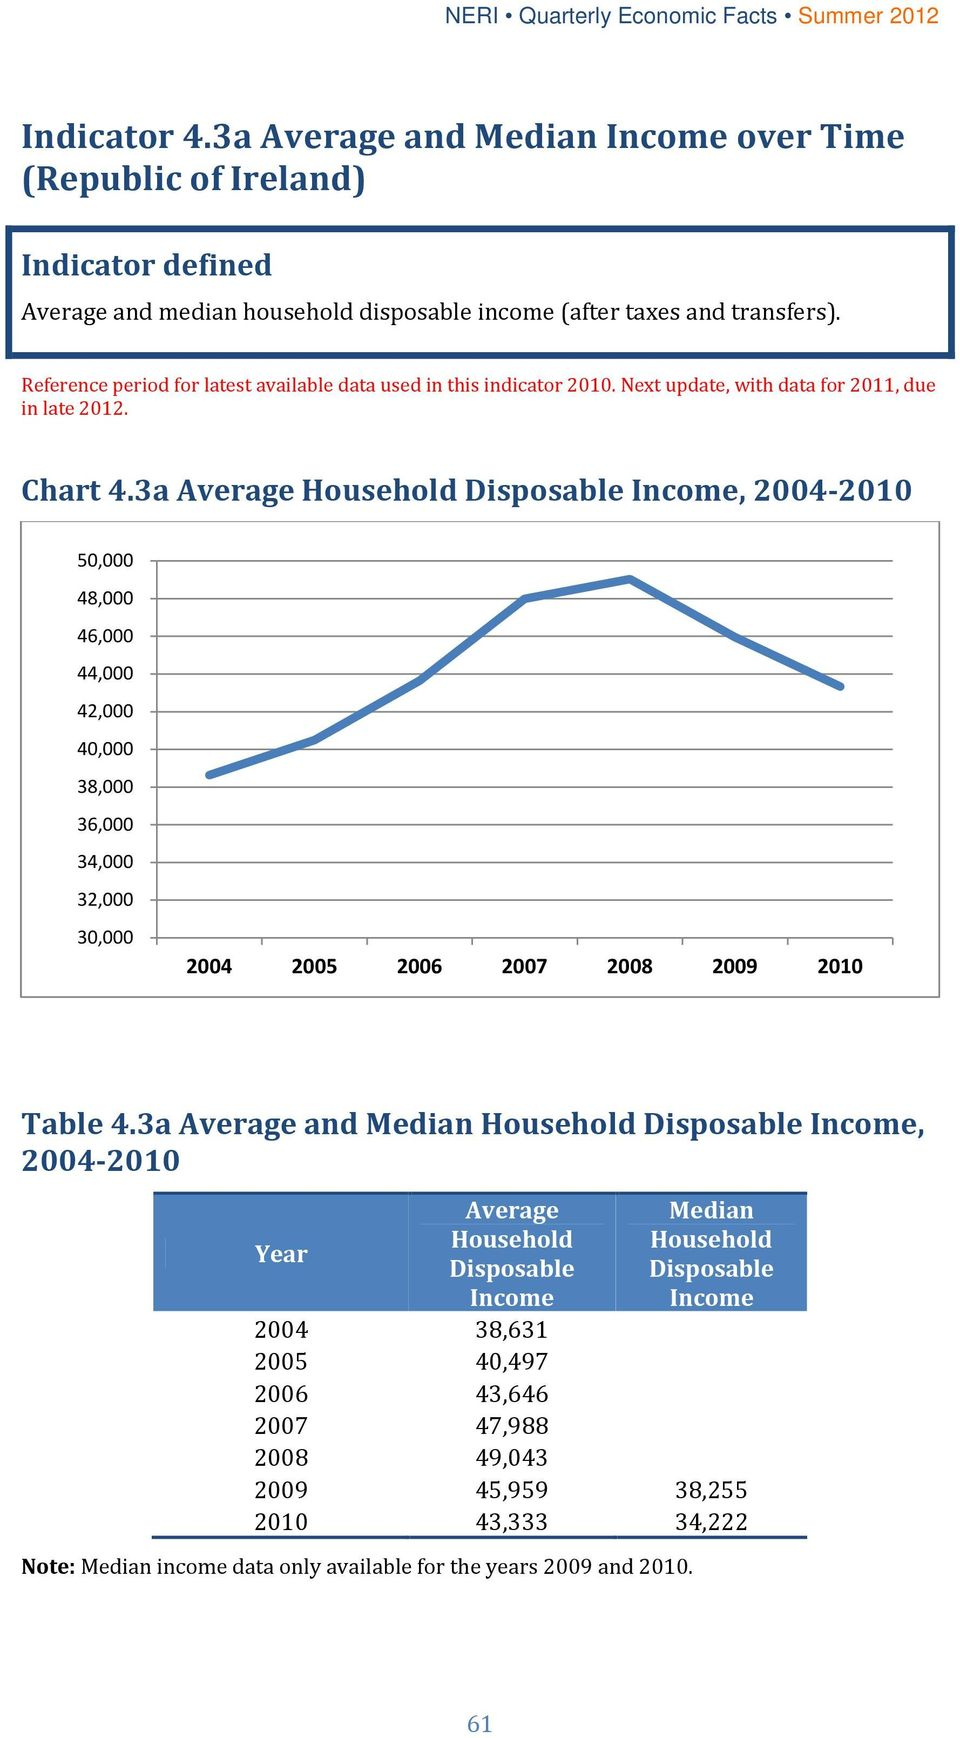 3a Average Household Disposable Income, 2004-2010 50,000 48,000 46,000 44,000 42,000 40,000 38,000 36,000 34,000 32,000 30,000 2004 2005 2006 2007 2008 2009 2010 Table 4.